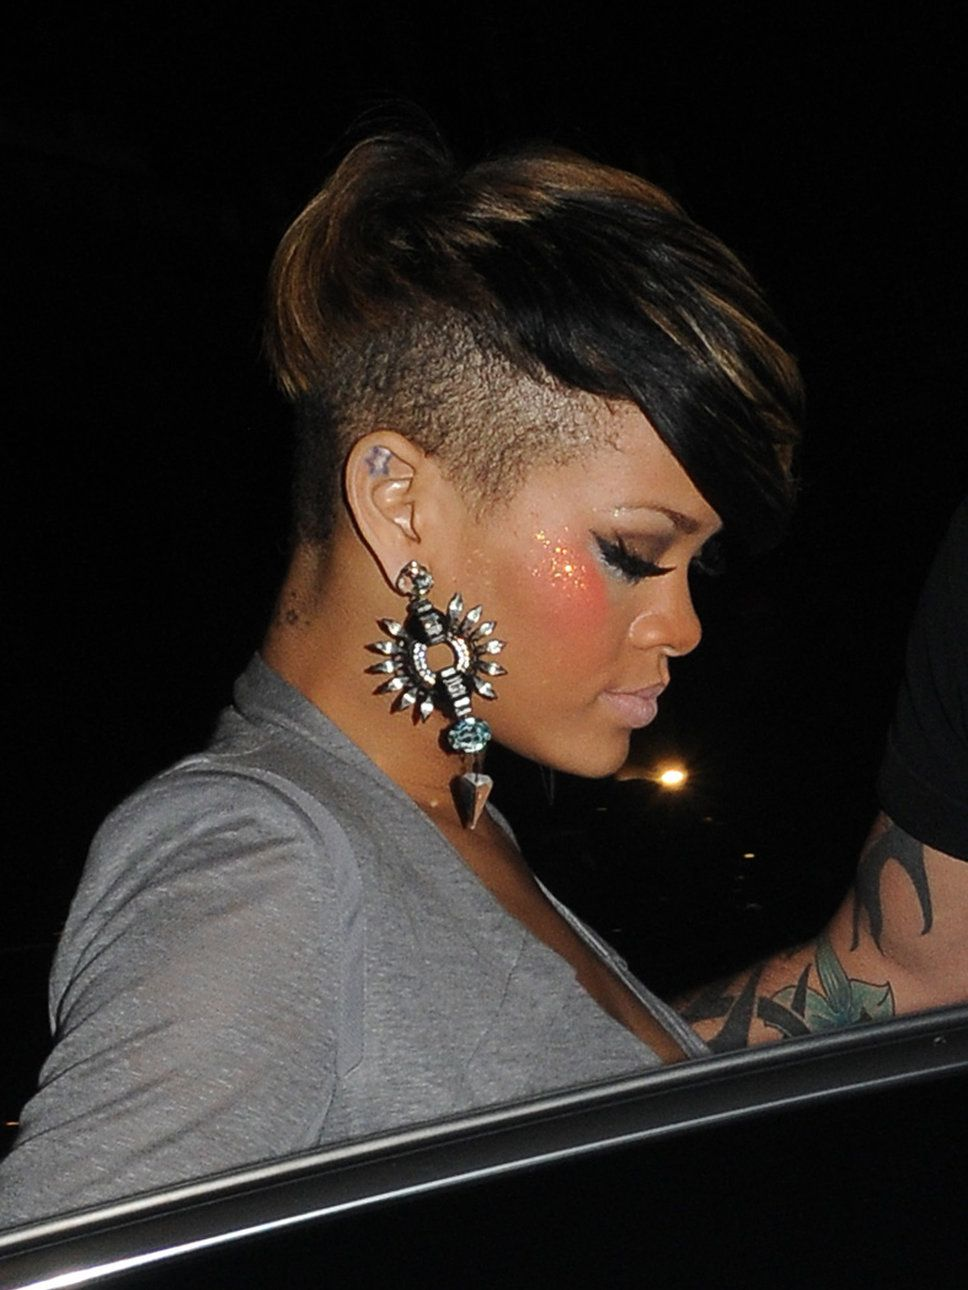 fro hawk hairstyles for afro women 2014 | Rihanna grey top shoulder pads earrings hairstyle faux hawk